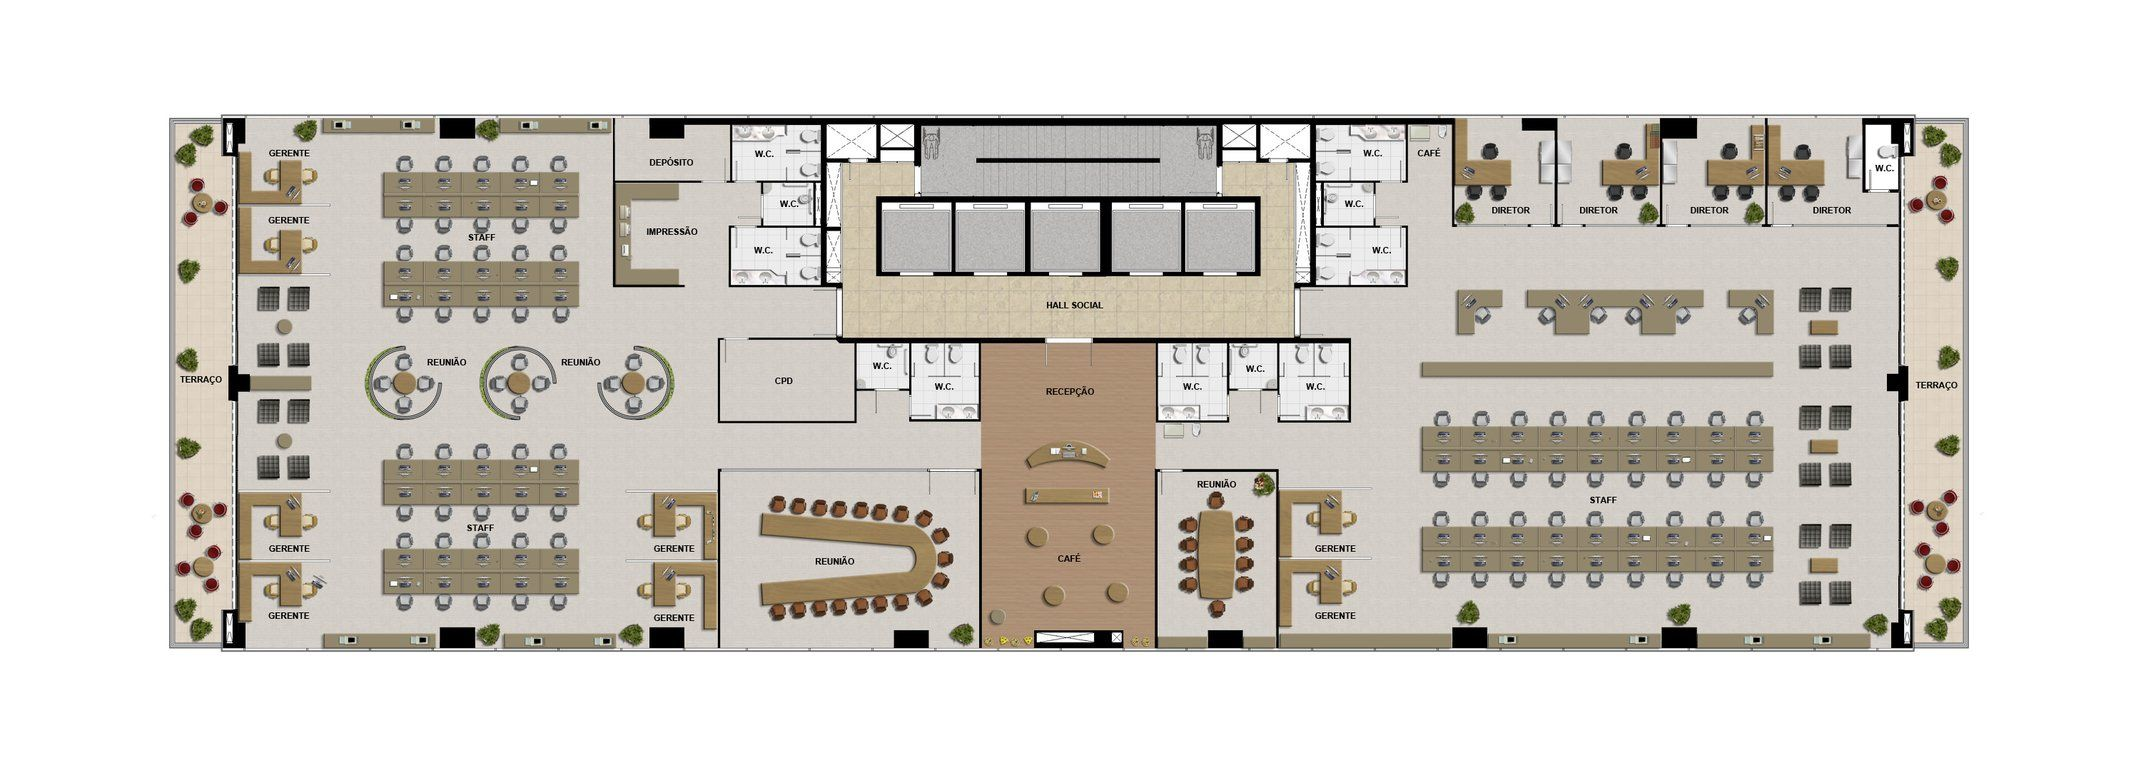 Office floor plan recherche google design int rieur 2 Office building floor plan layout